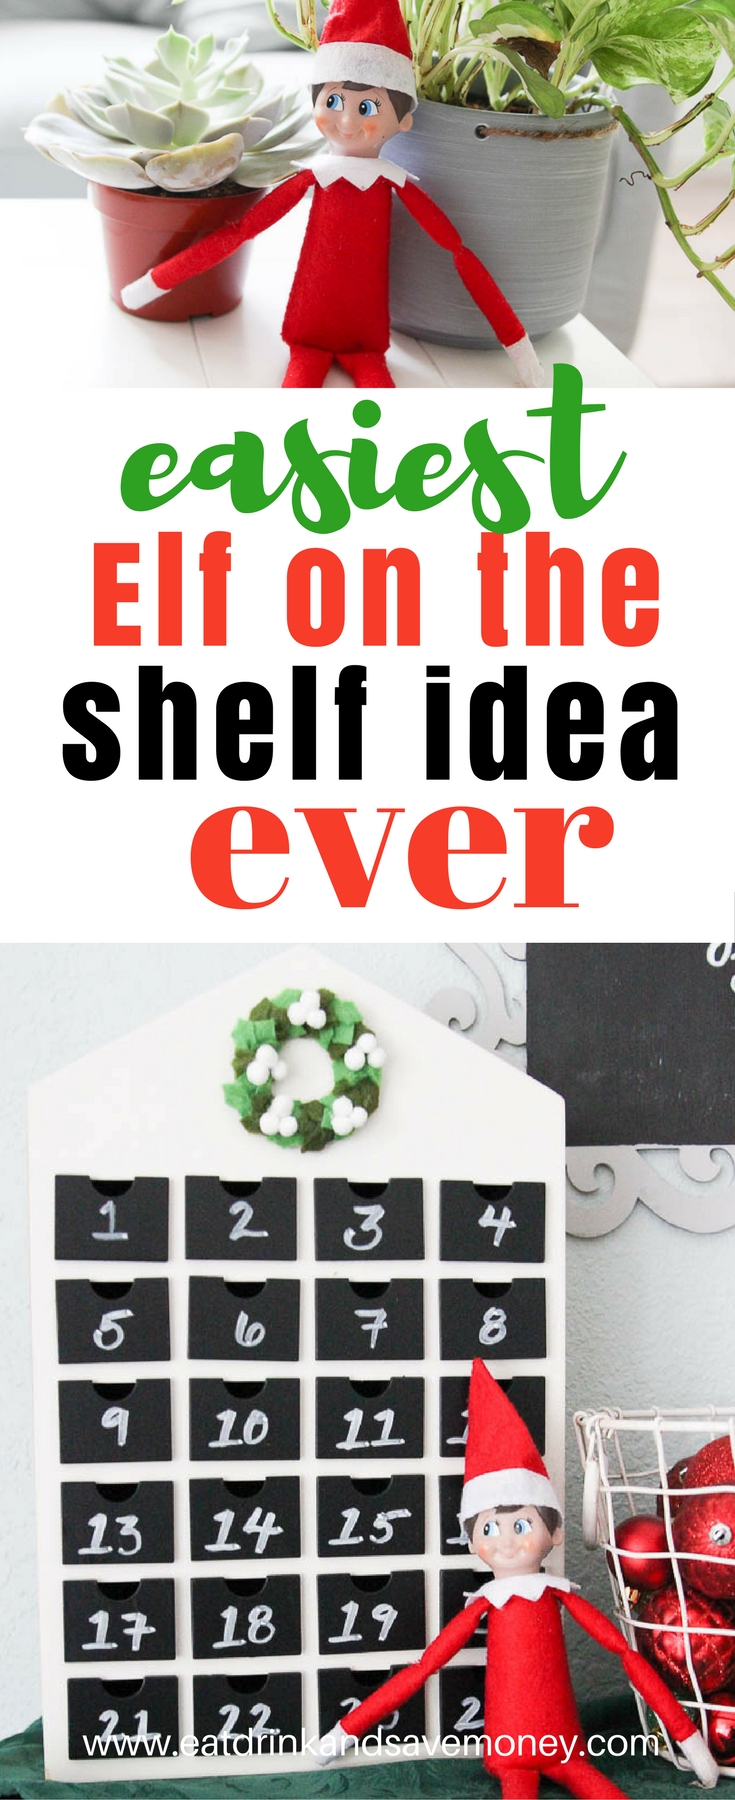 Easiest elf on the shelf idea ever